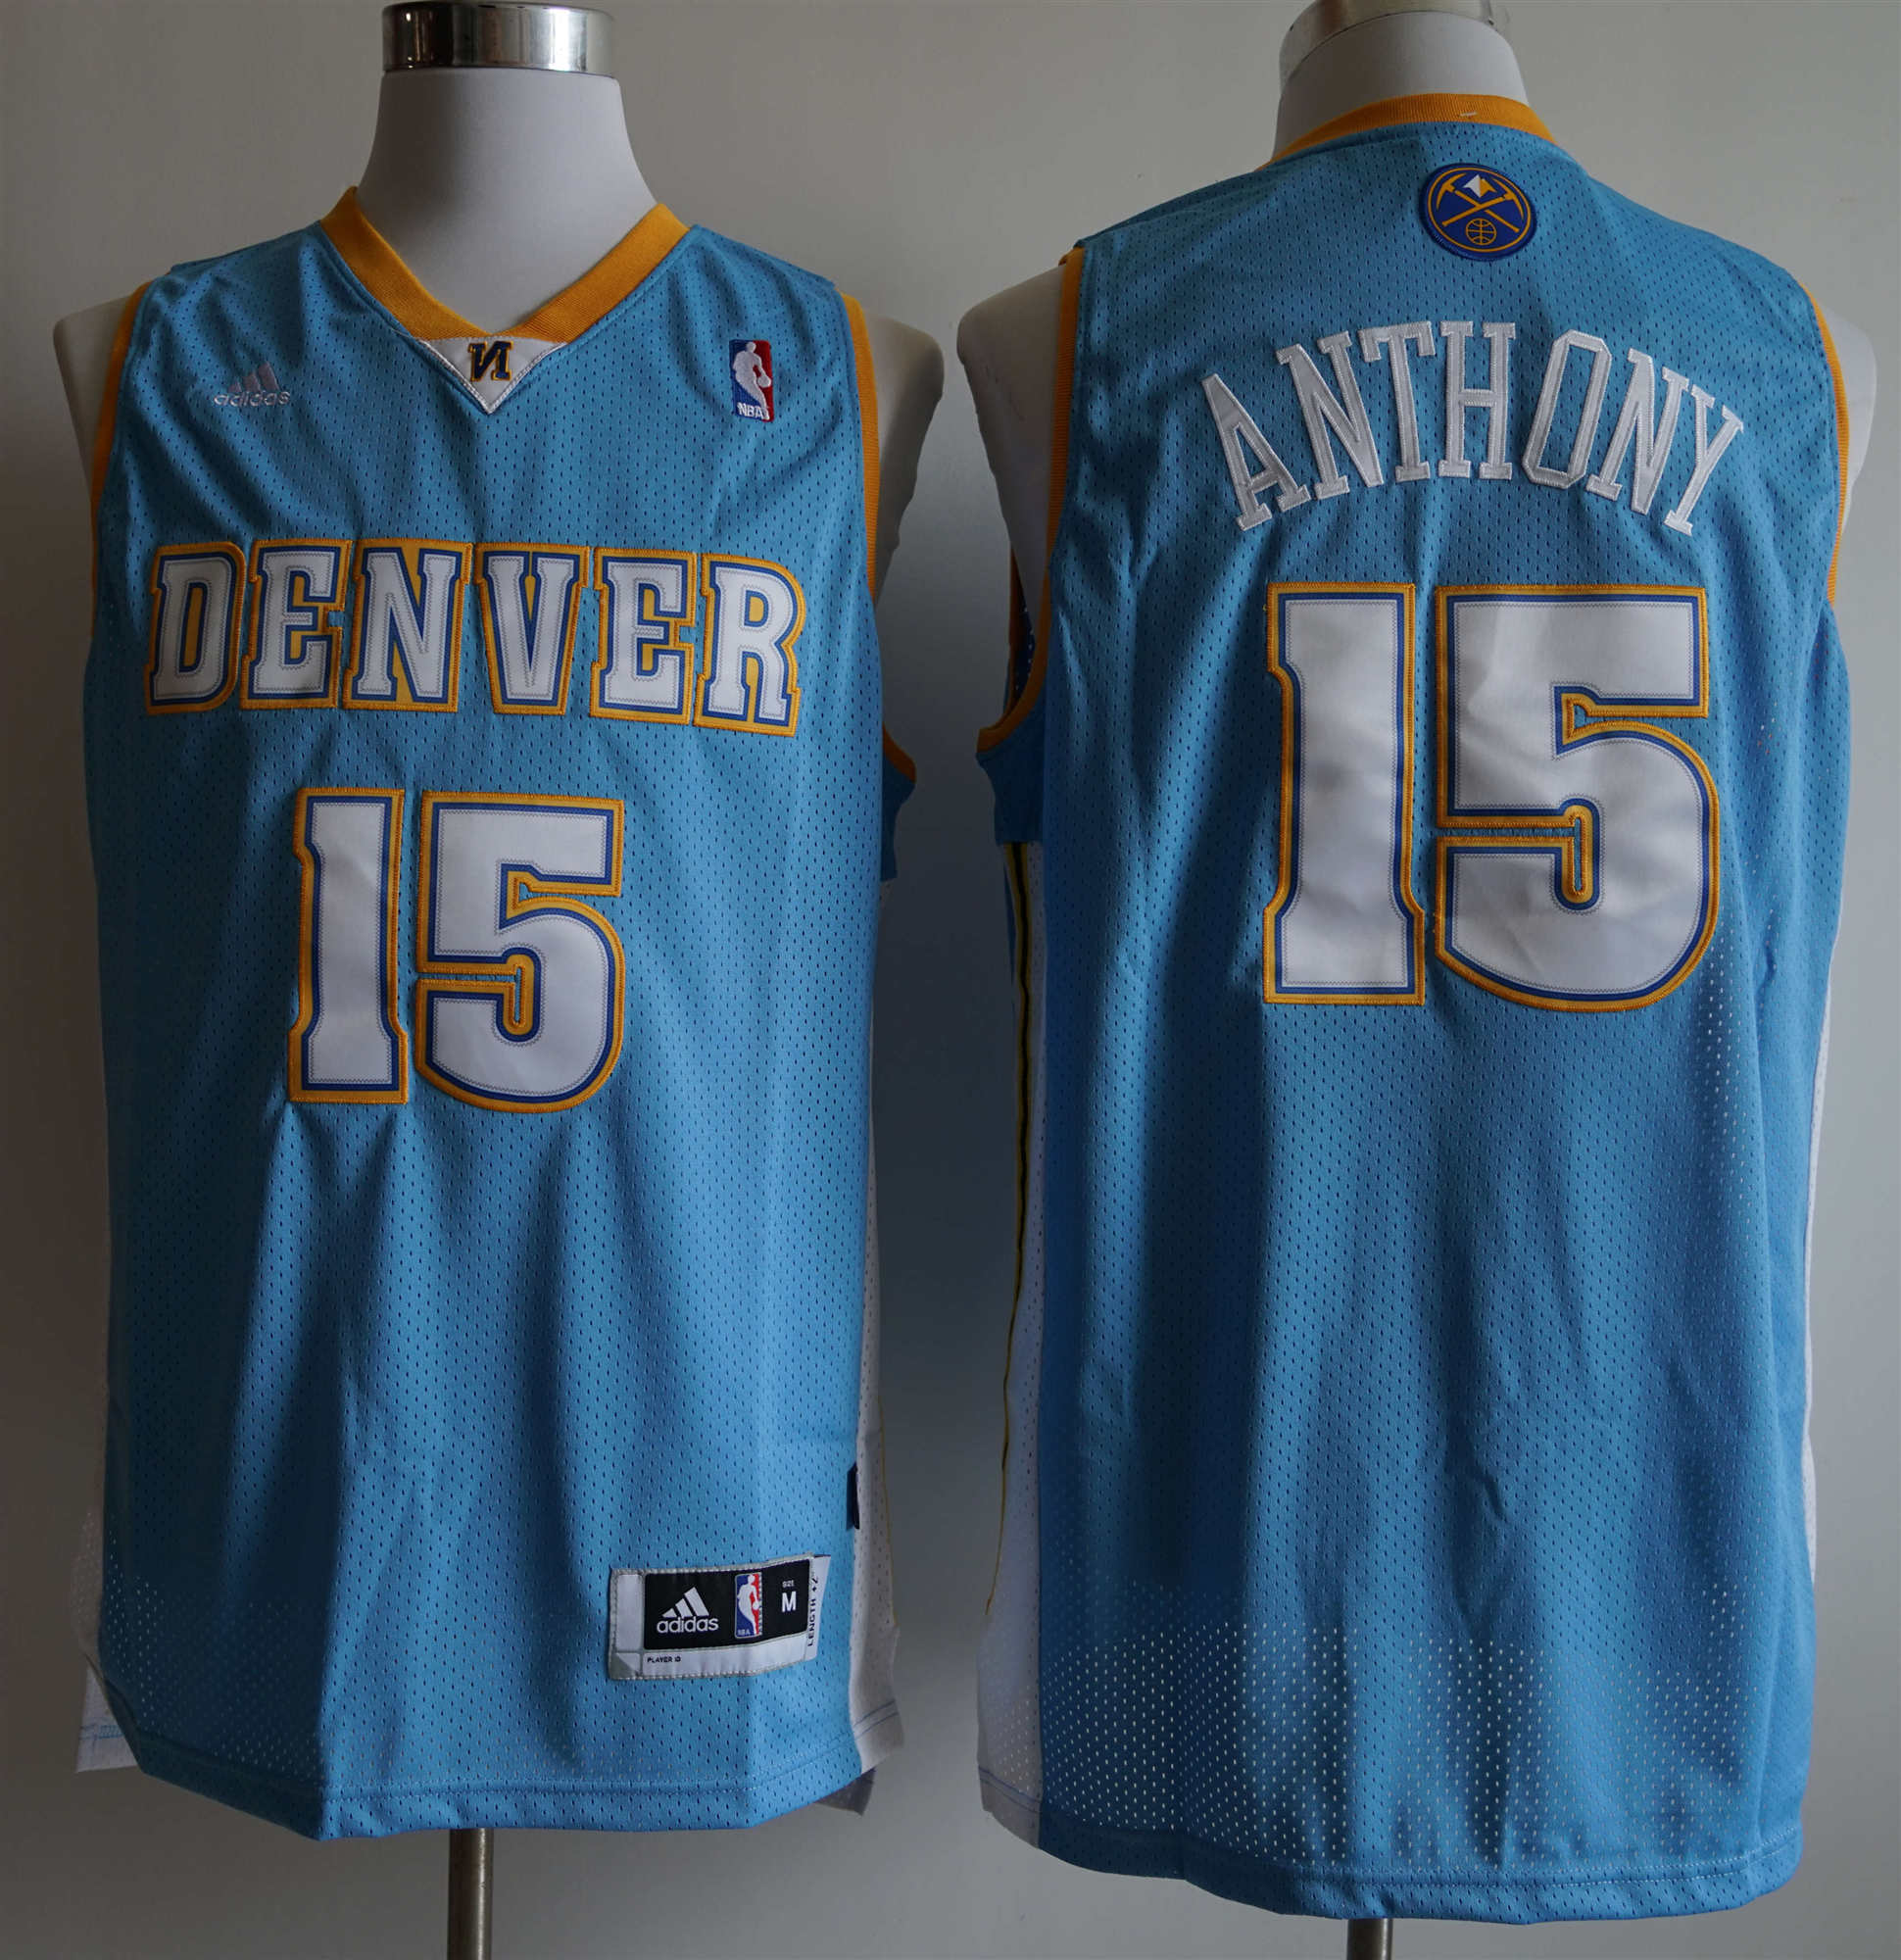 Nuggets #15 Carmelo Anthony Light Blue Adidas Jersey